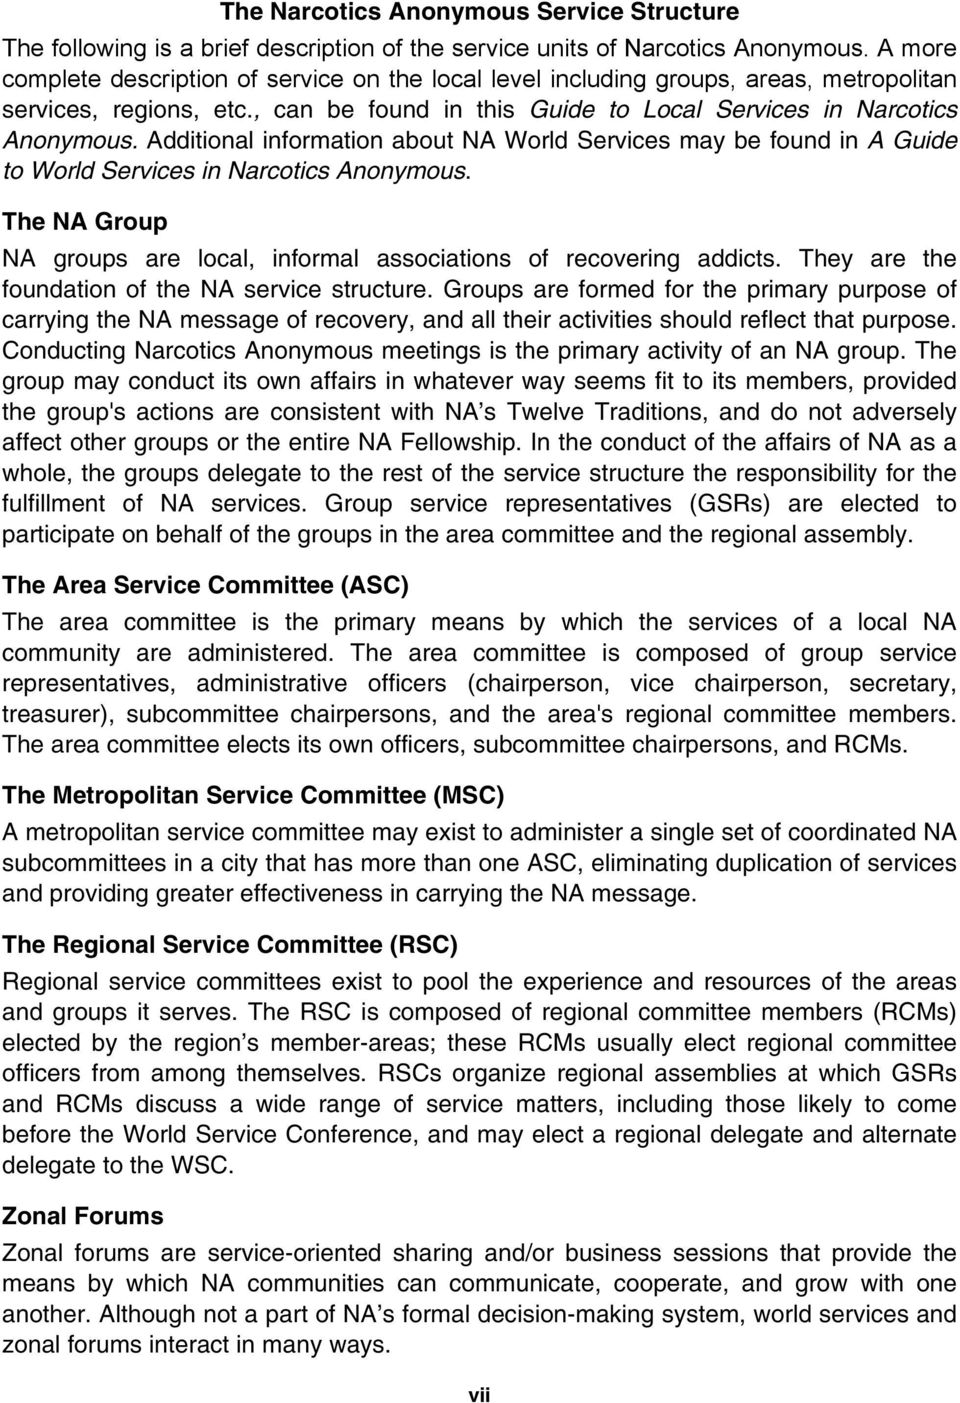 Additional information about NA World Services may be found in A Guide to World Services in Narcotics Anonymous. The NA Group NA groups are local, informal associations of recovering addicts.